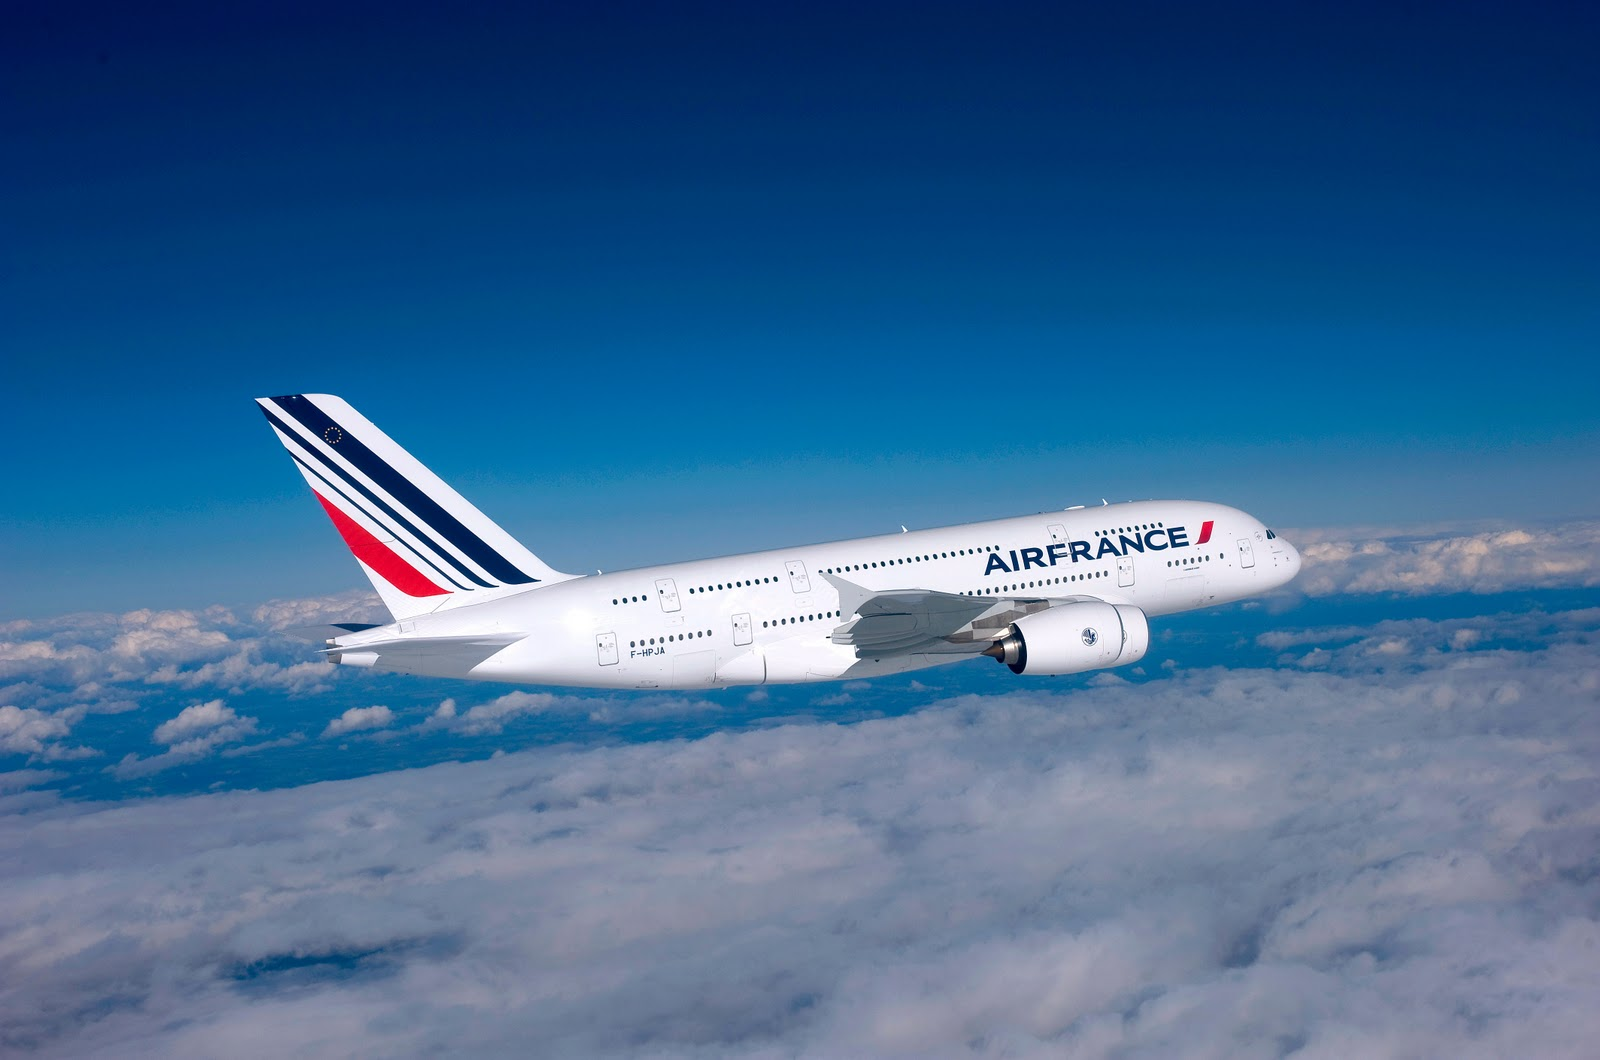 Wallpaper wallpaper a380 for Interieur avion air france